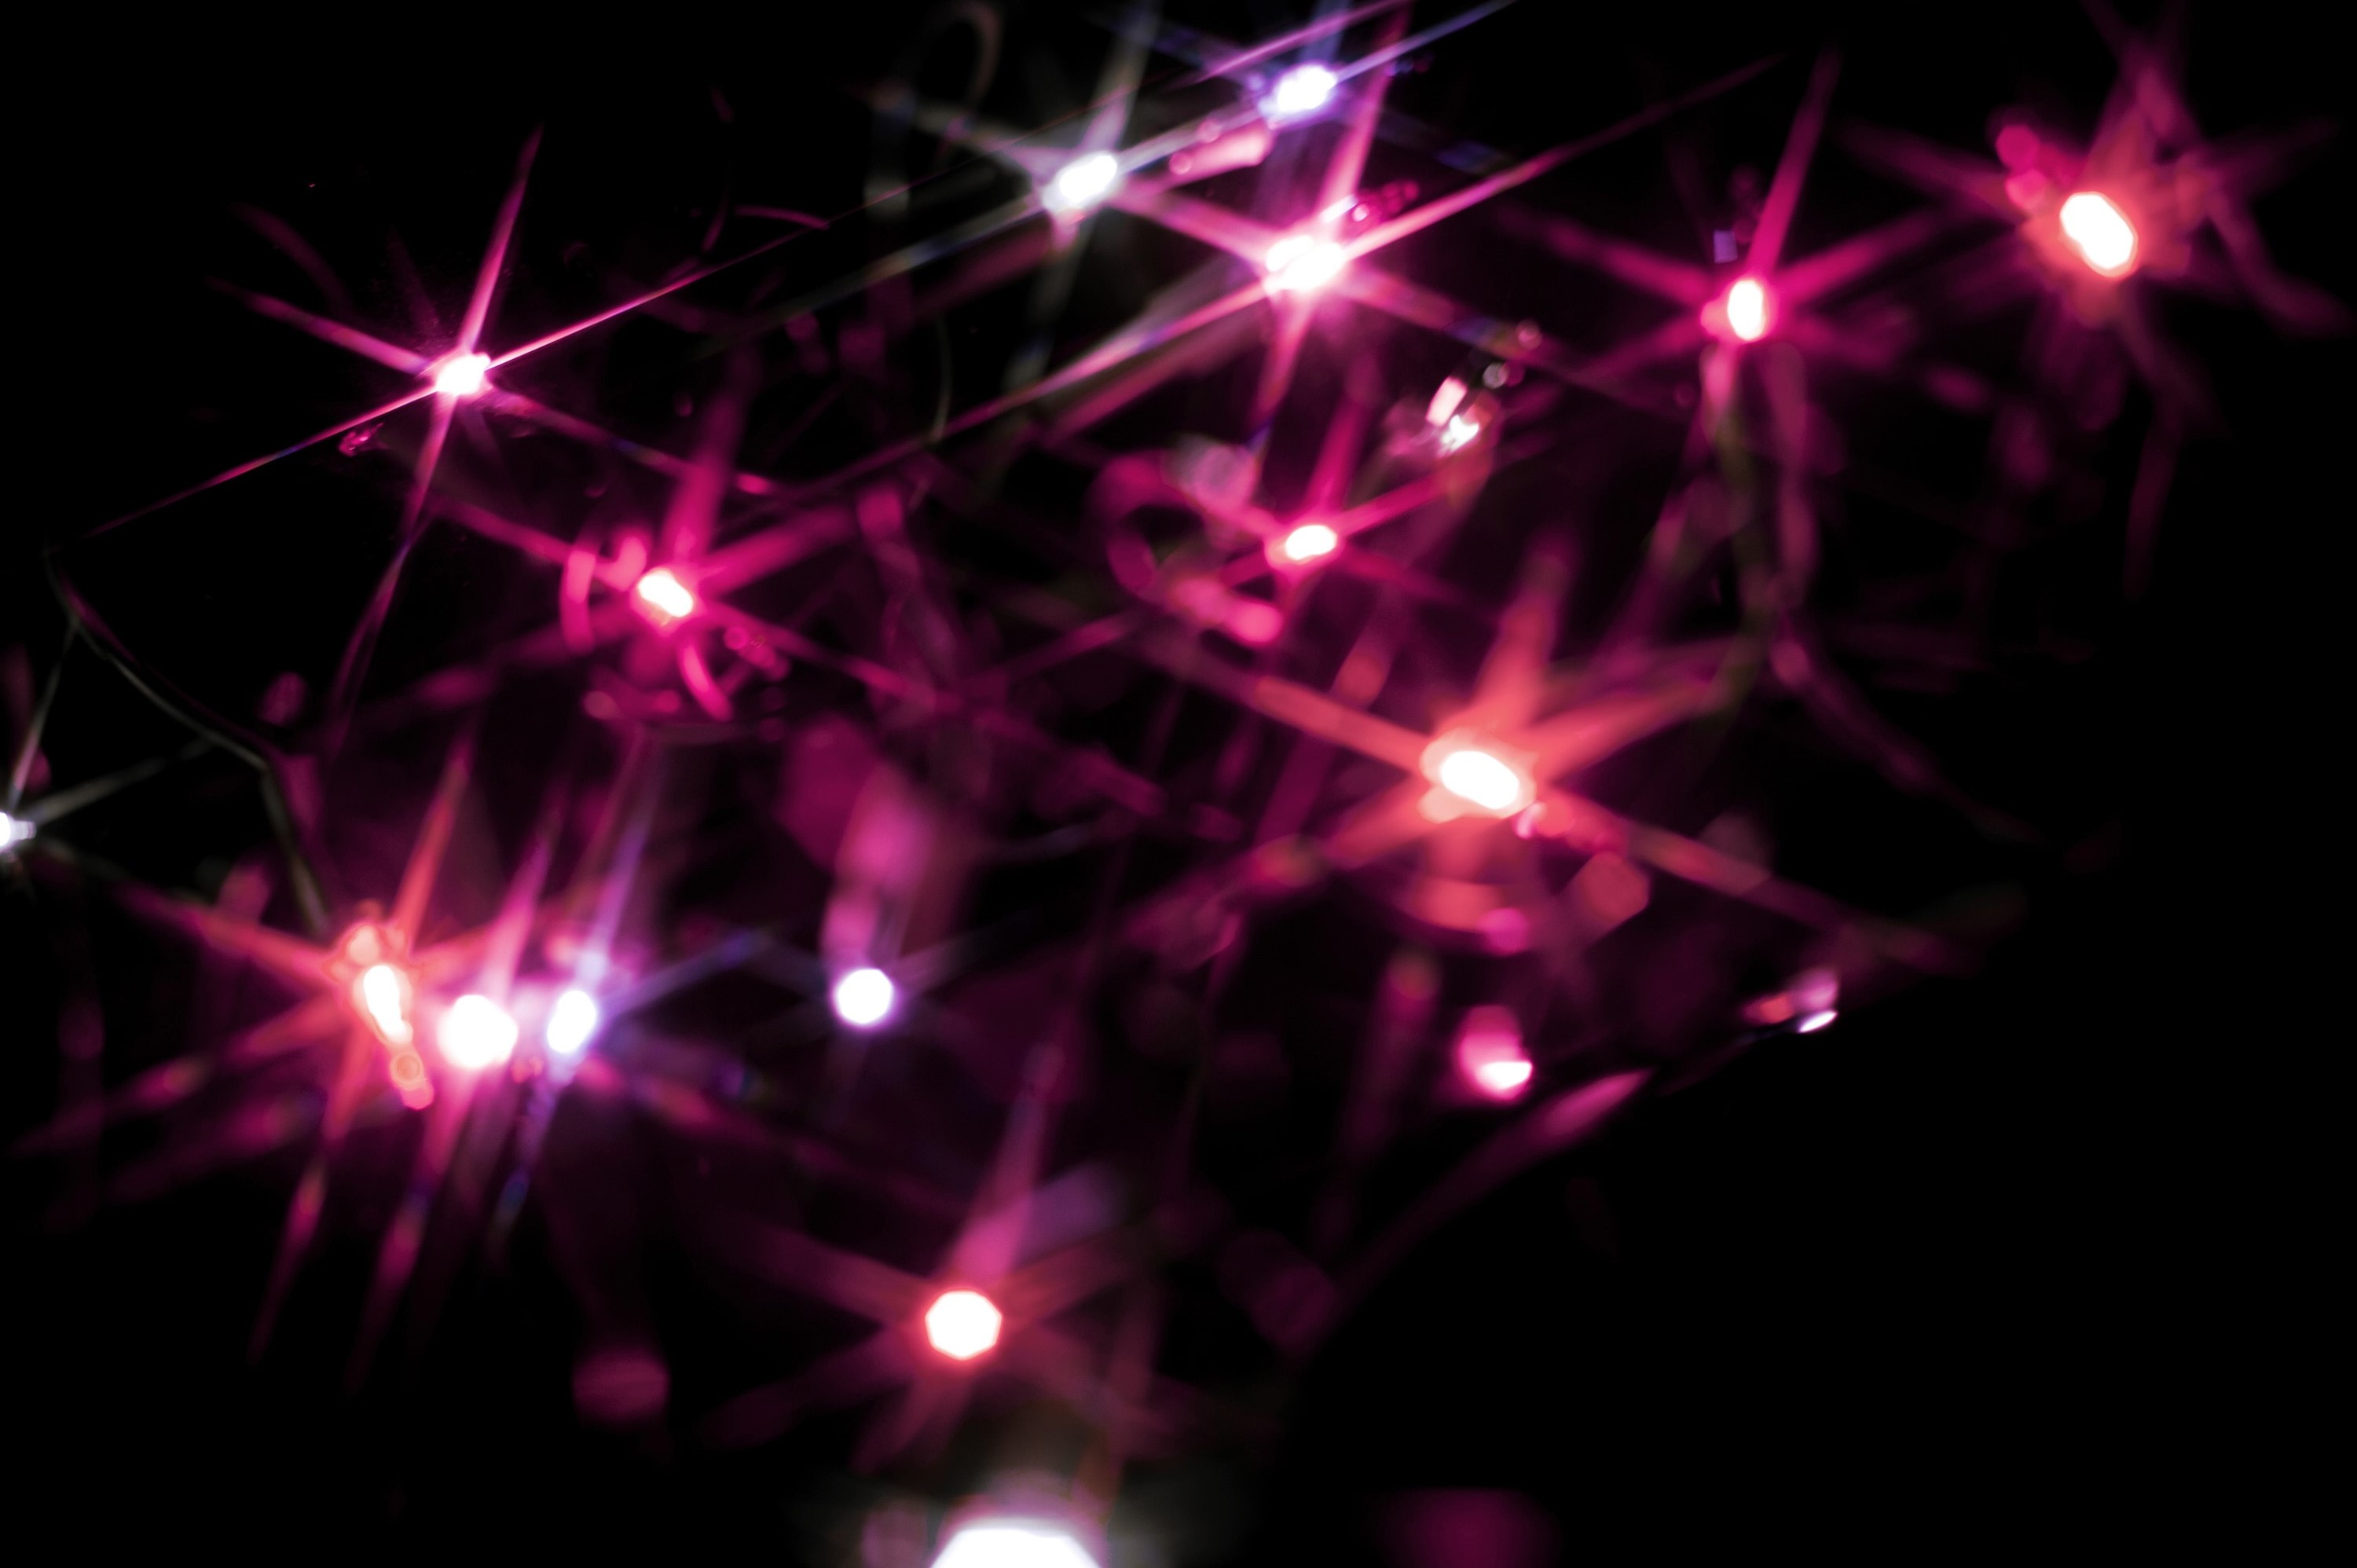 Christmas background of colourful vivid pink starburst lights scattered in the darkness sparkling and glowing for a fesive greeting card or seasonal wishes